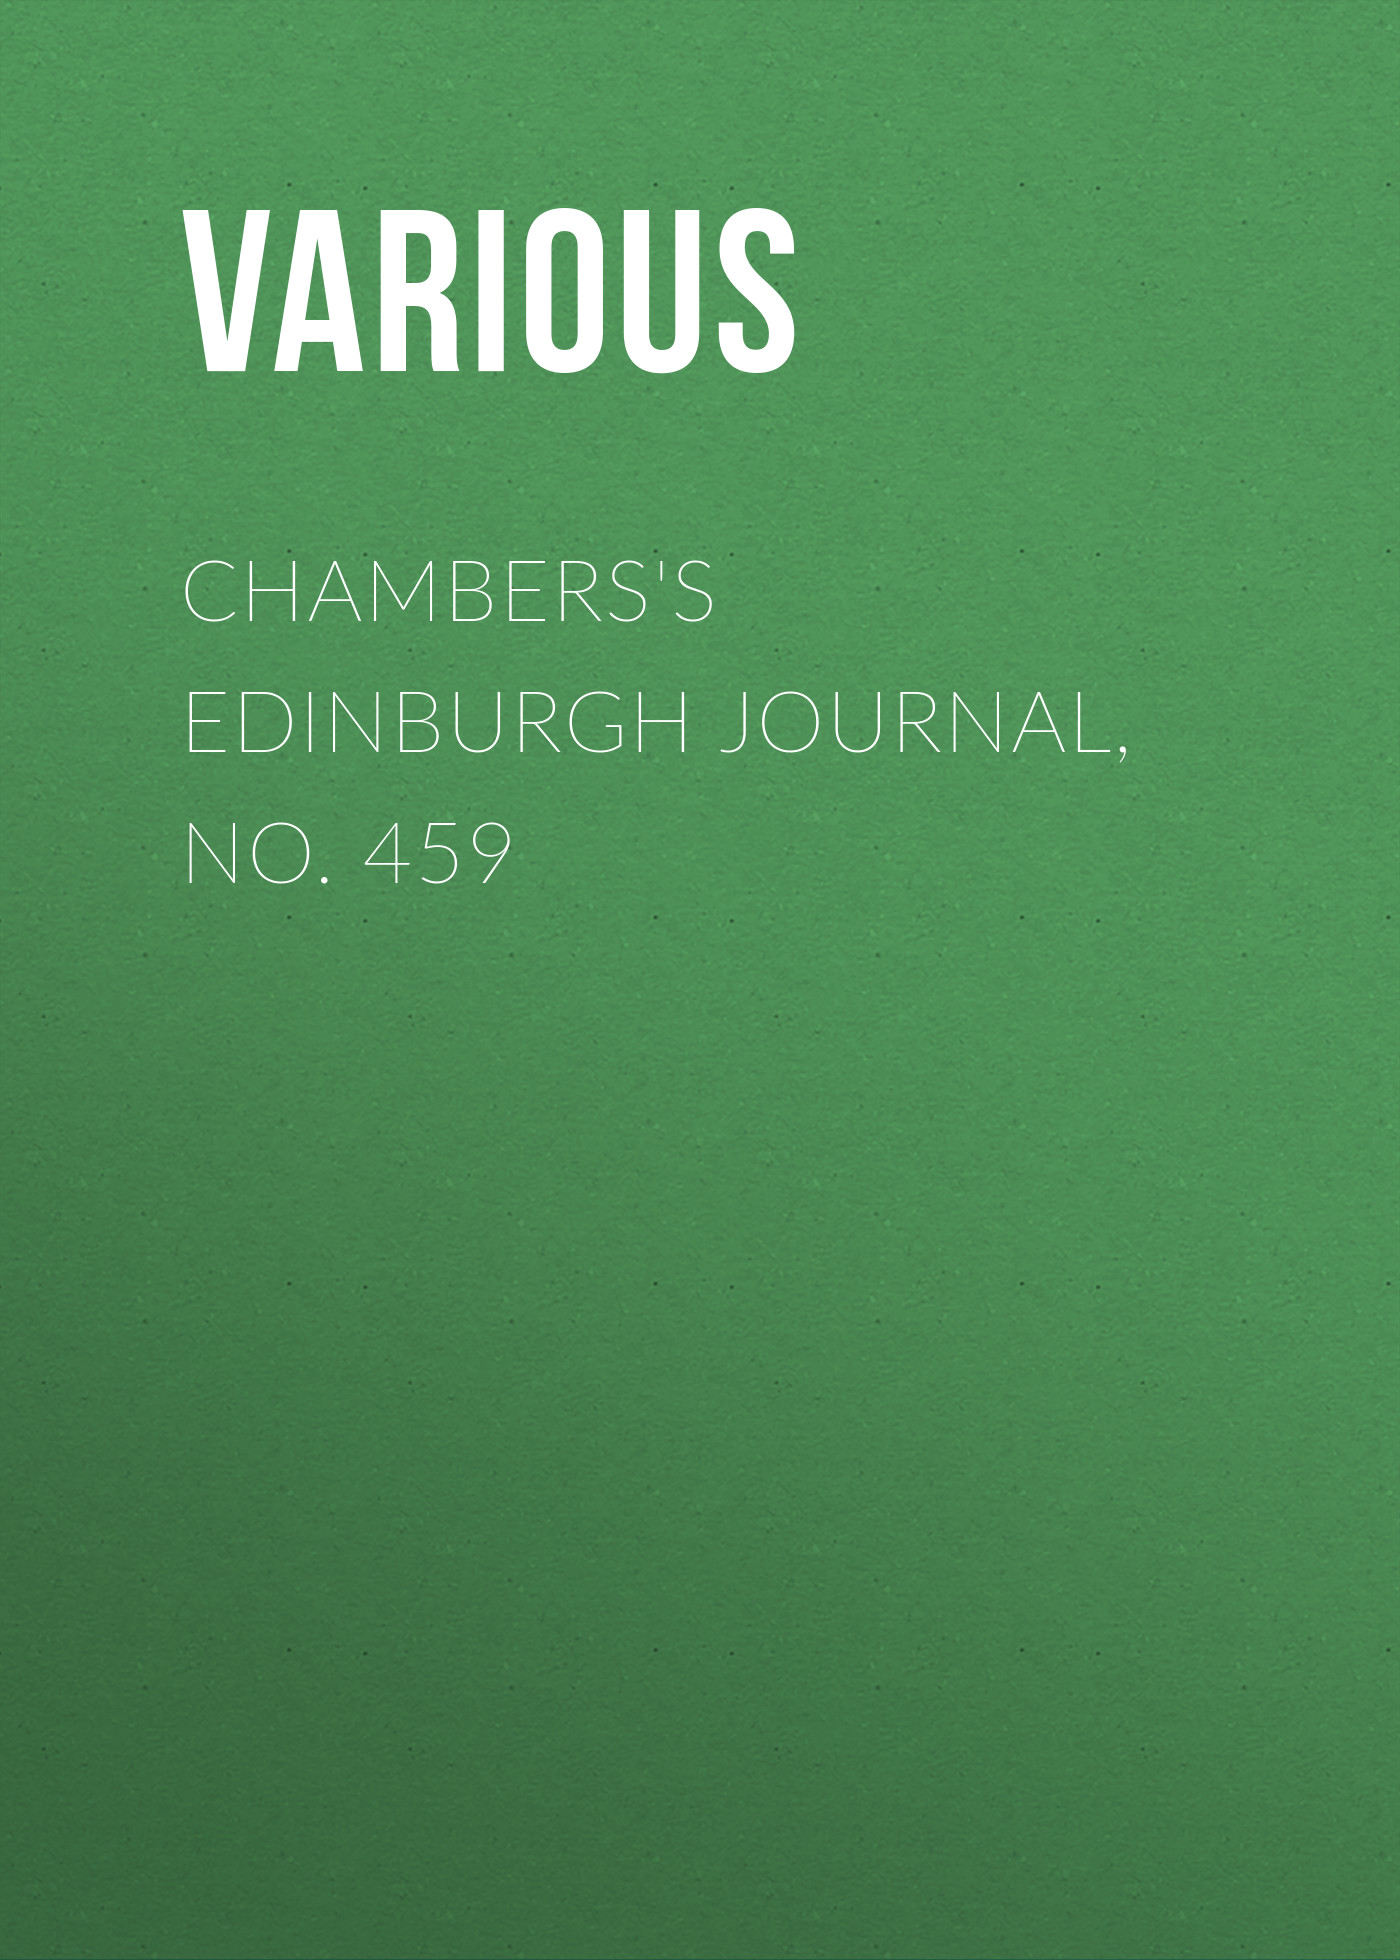 Various Chambers's Edinburgh Journal, No. 459 dara o briain edinburgh